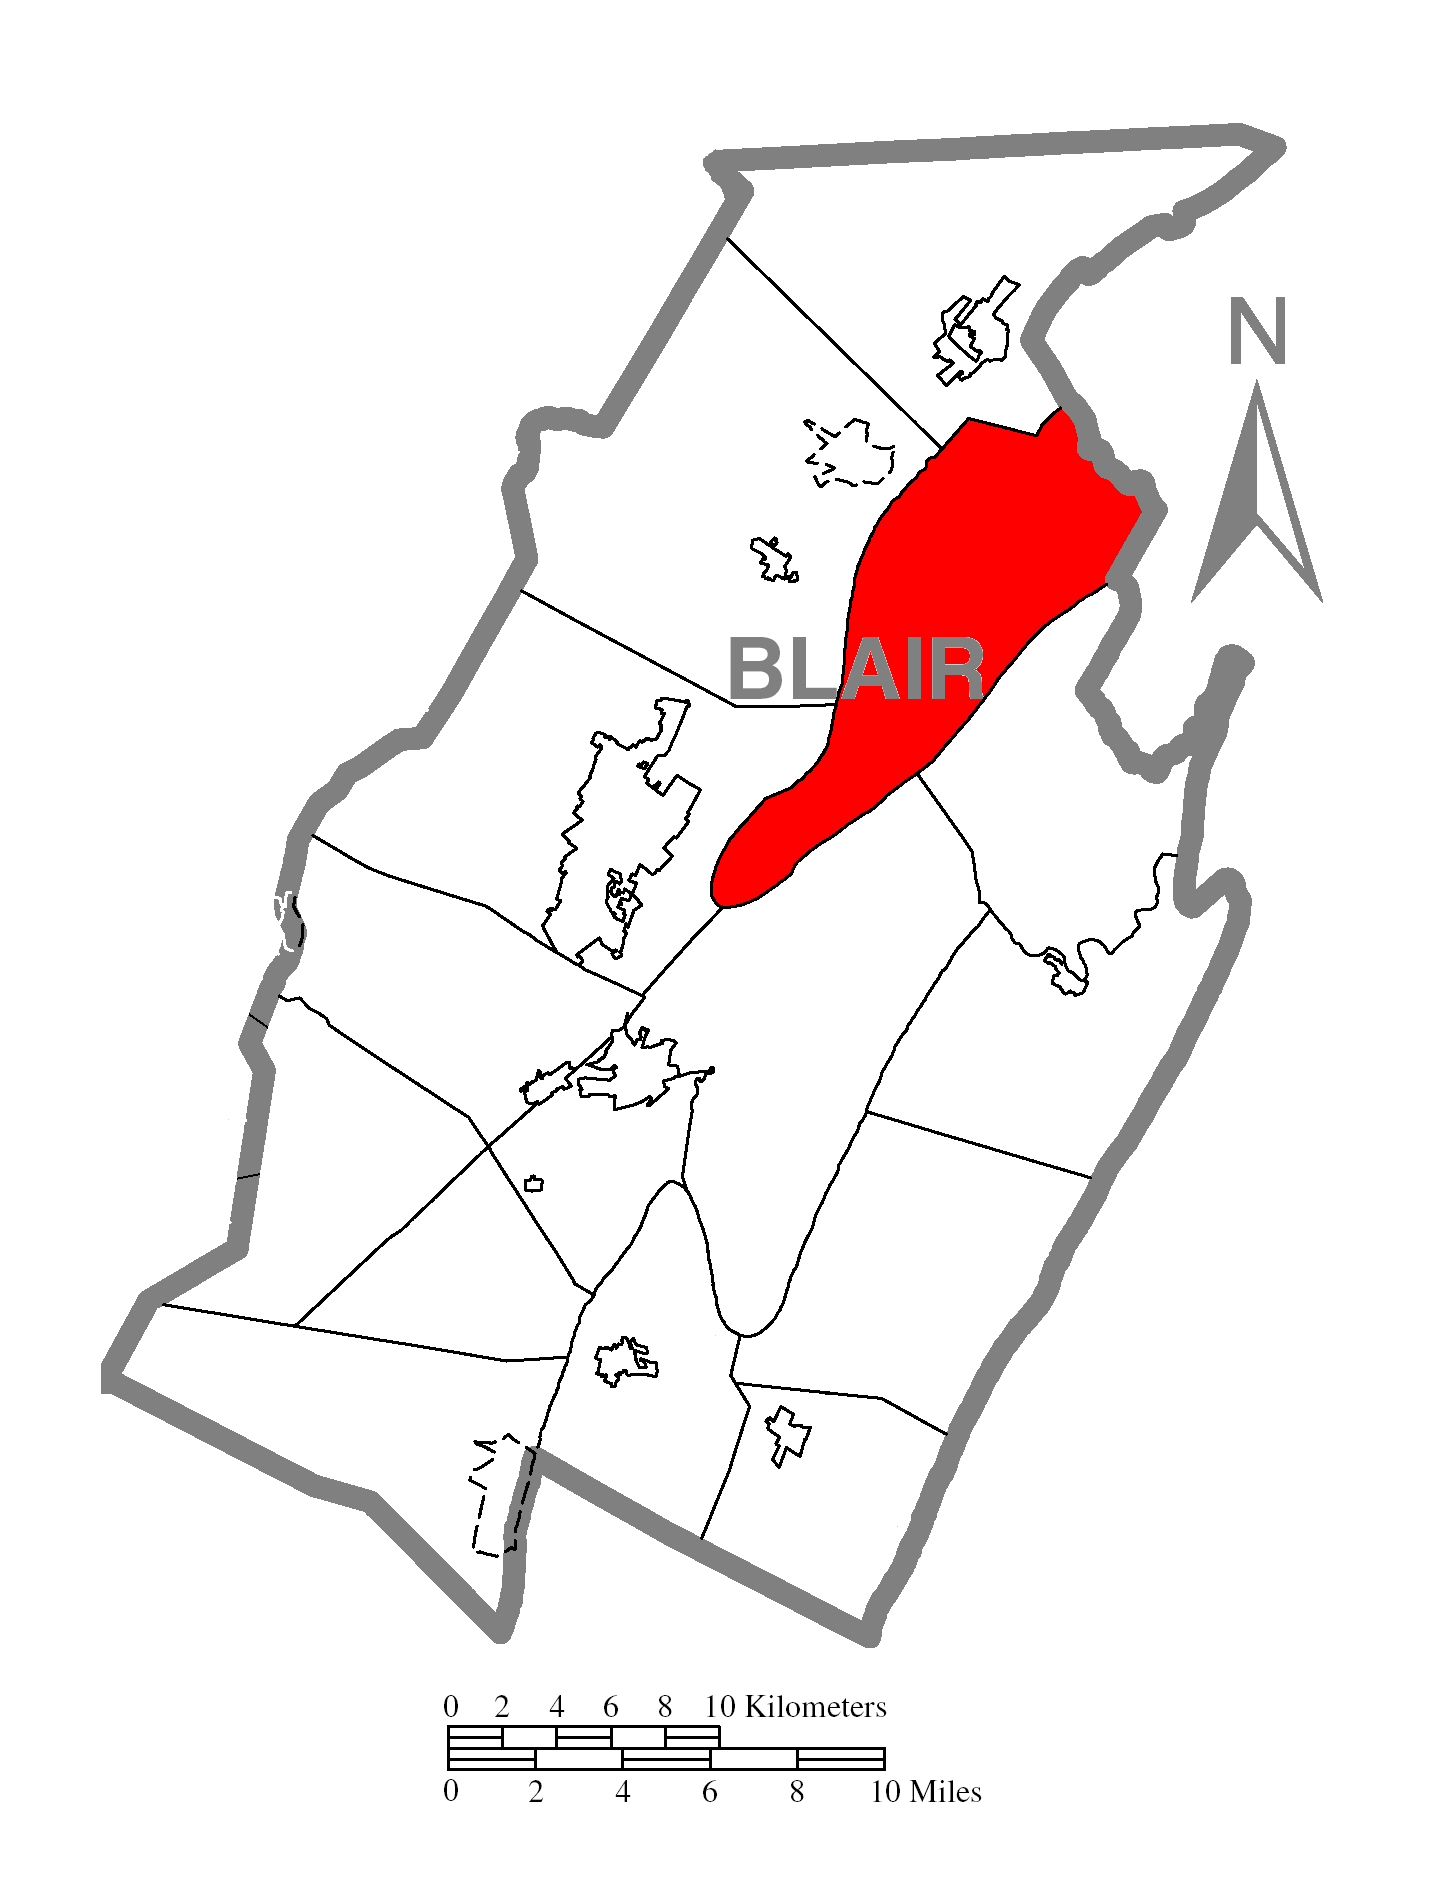 singles in blair county The above real estate listings are single family homes for sale in the county of blair pennsylvania priced between $50,000 and $400,000 including detached homes, ranch houses, condos, townhomes, mobile homes, and all mls real estate listings.